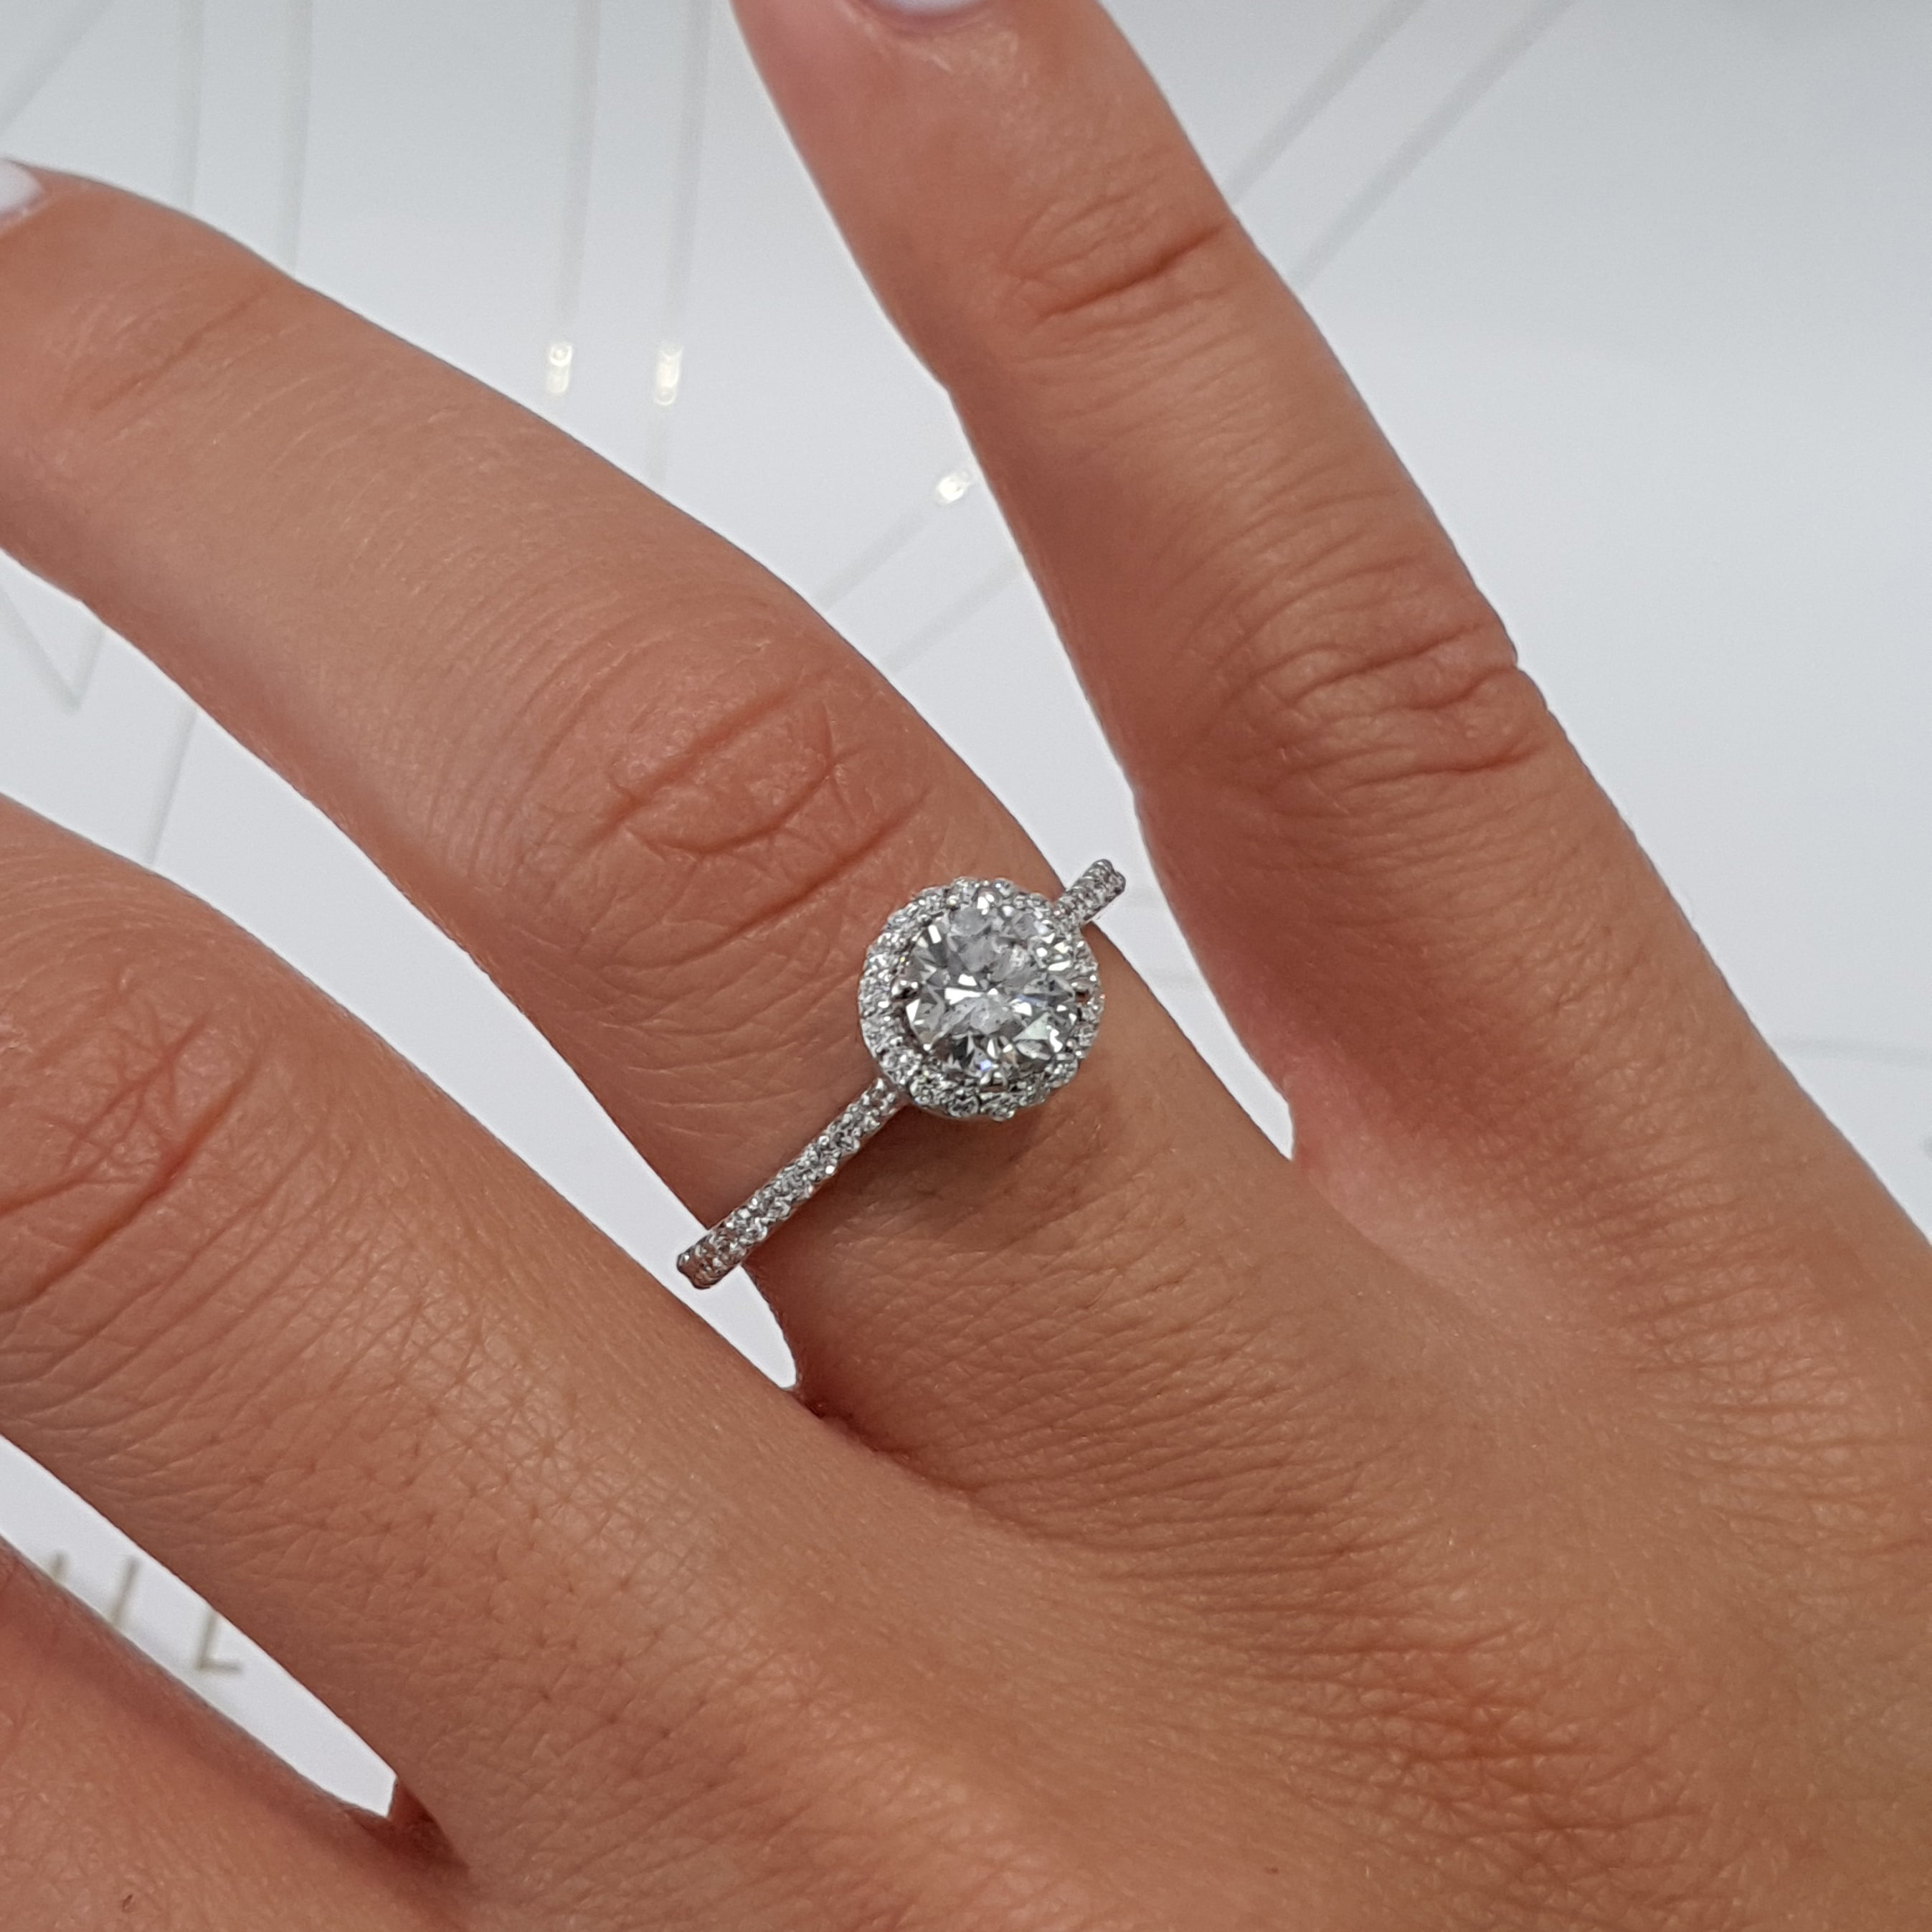 14K WHITE GOLD HALO LAB GROWN DIAMOND ENGAGEMENT RING STYLE - 1.25 CARAT F VS2 ROUND CUT #LG10018